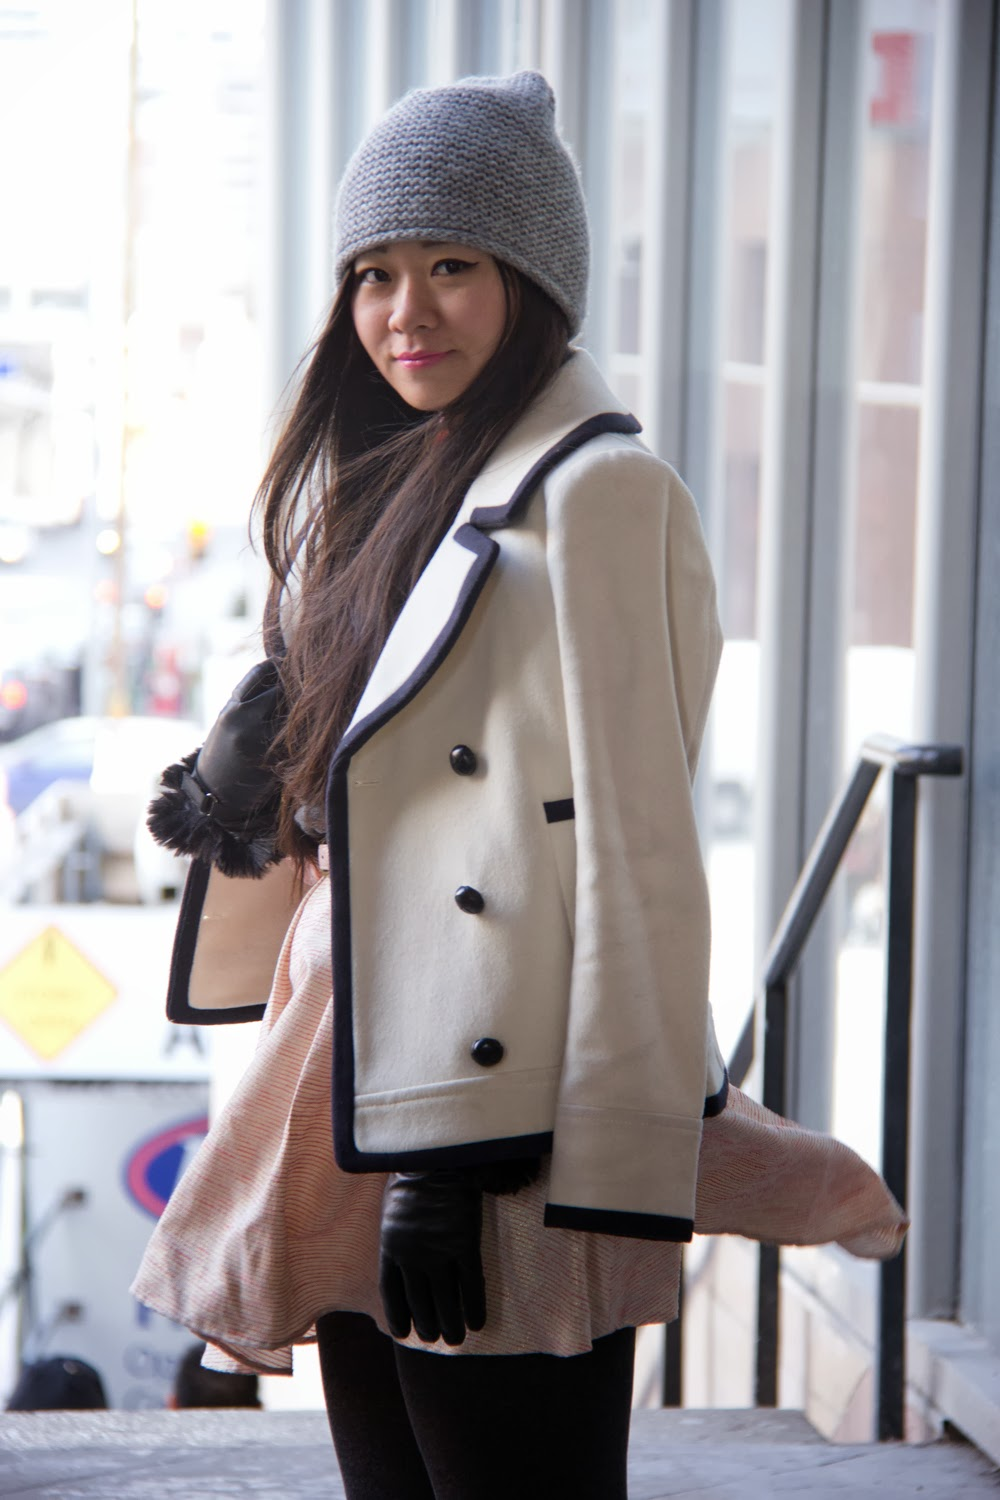 JCrew-Peacoat, Pastel-Pink-Skater-Skirt, LeChateau-Gloves, Pearls-Necklace, Grey-Beanie